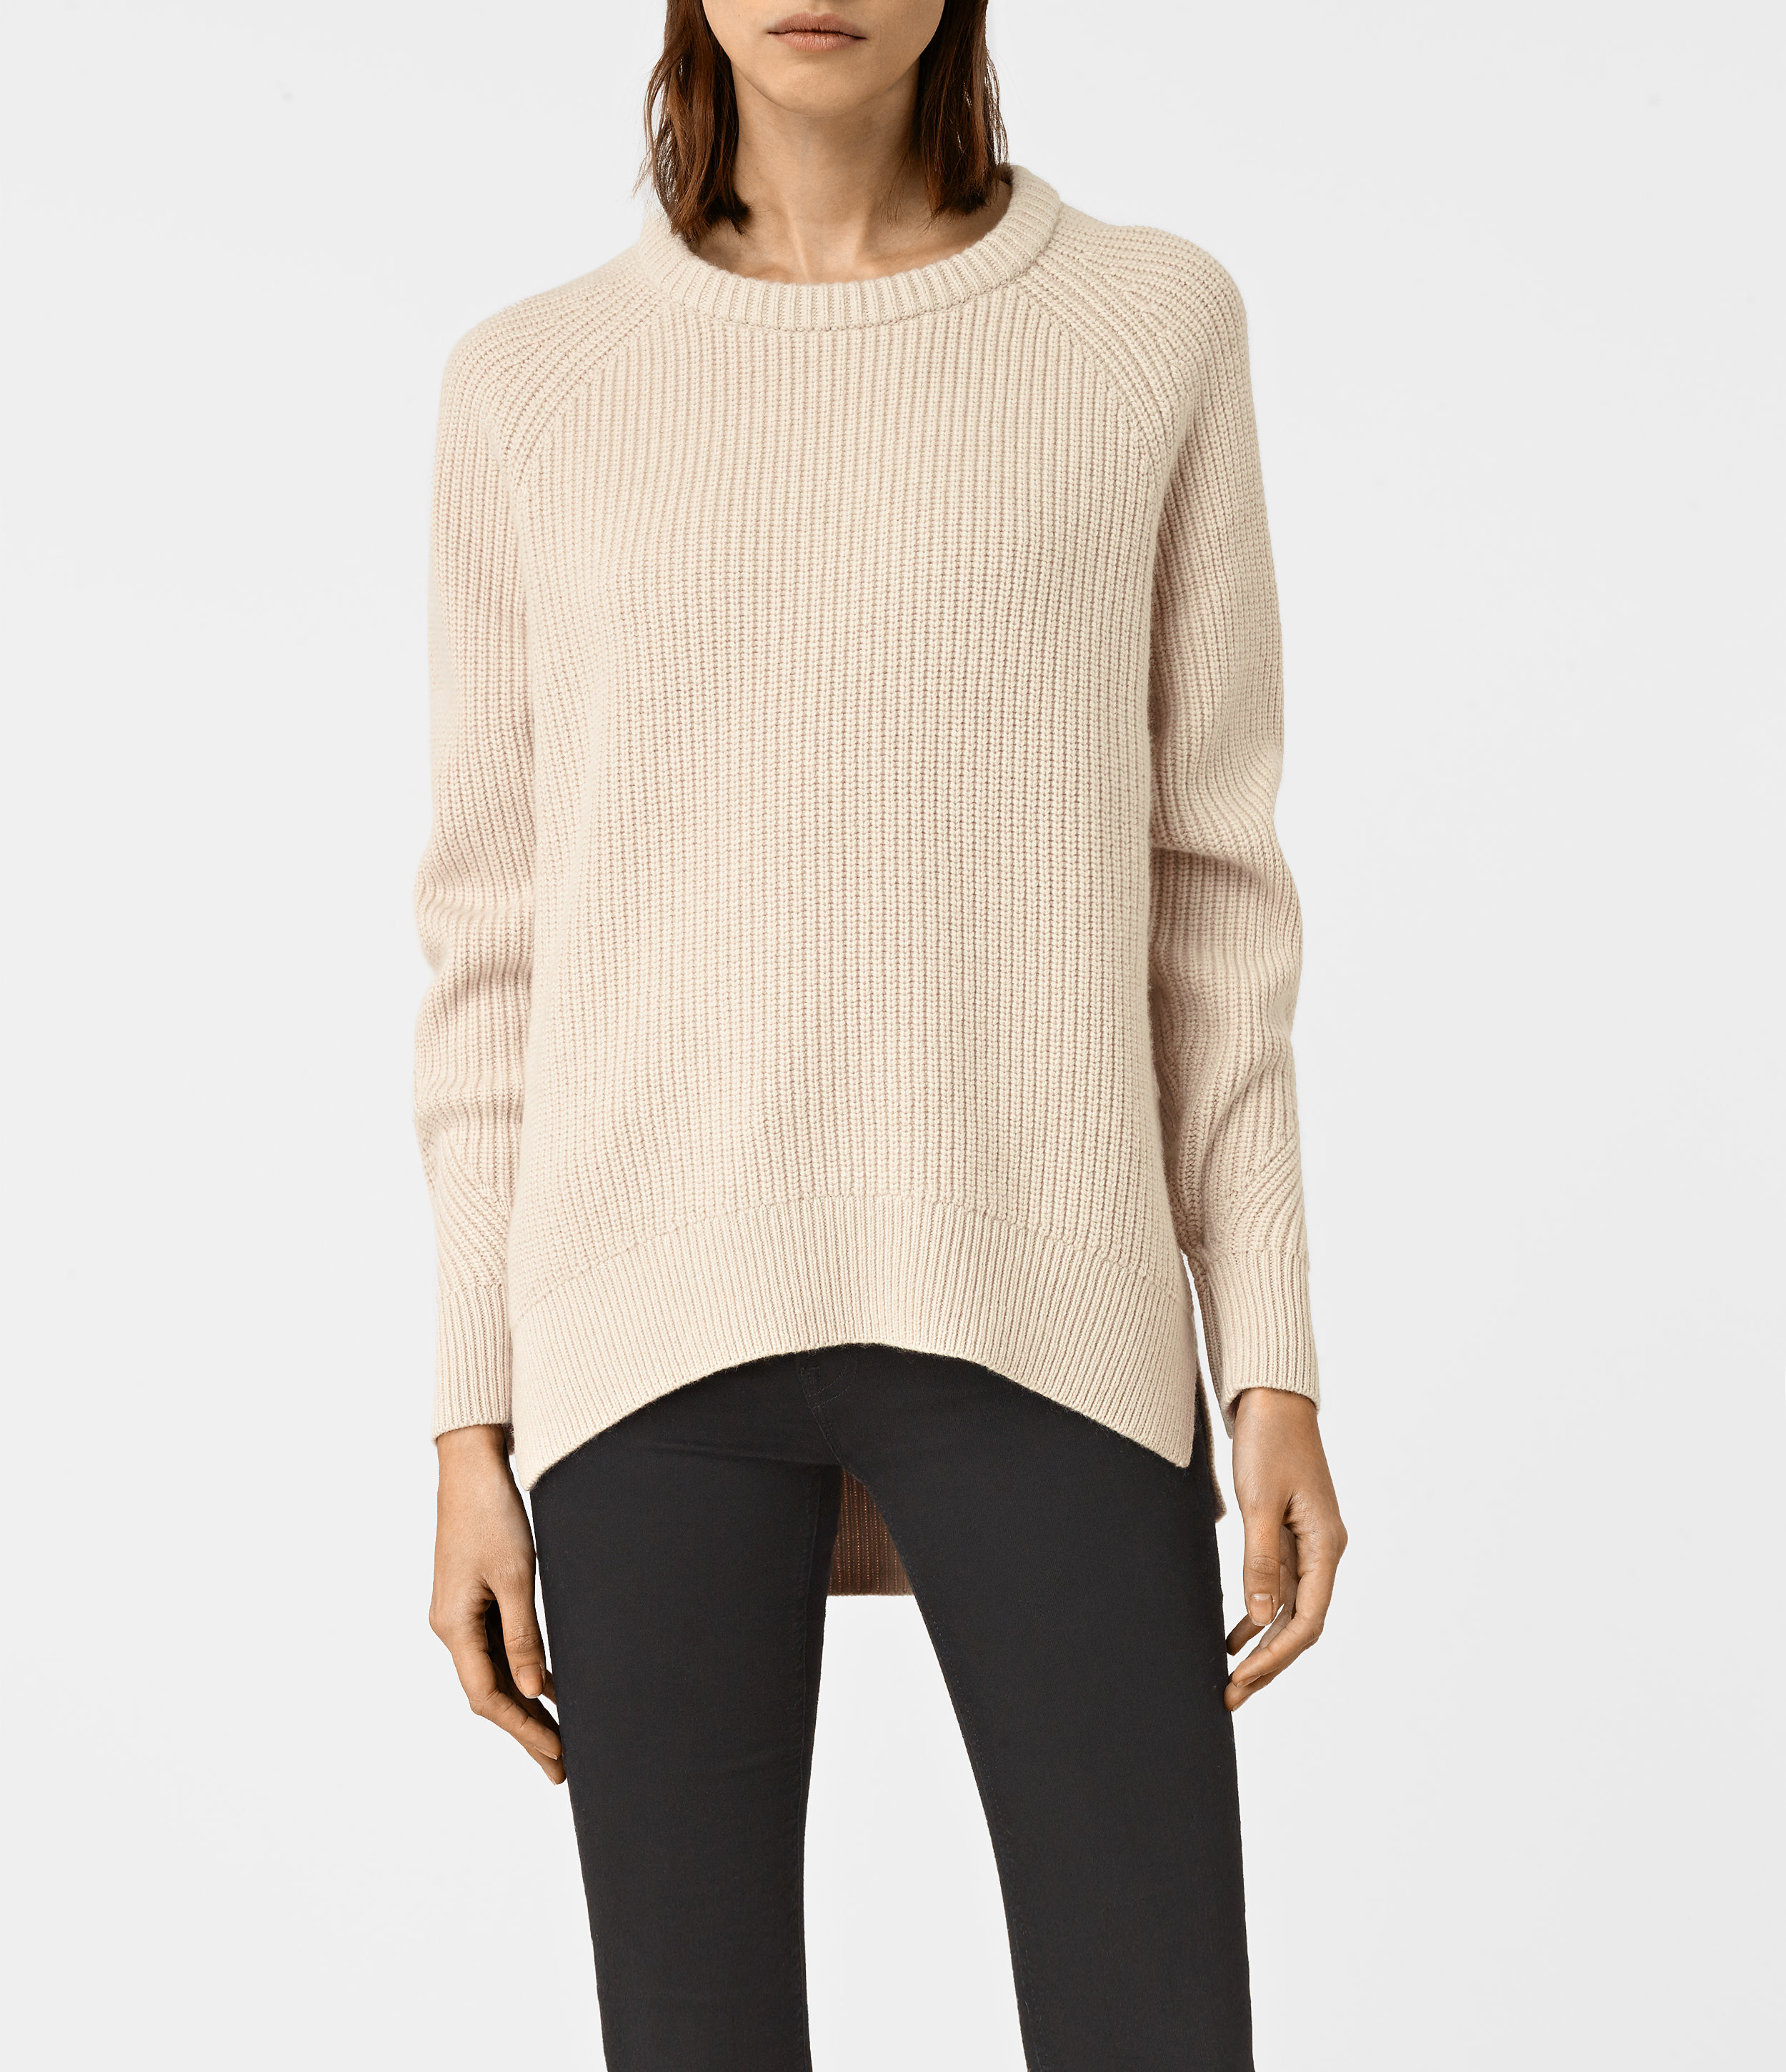 Popular Online AllSaints Alyse Embellished Jumper Cheap Explore Official THRnw1A8